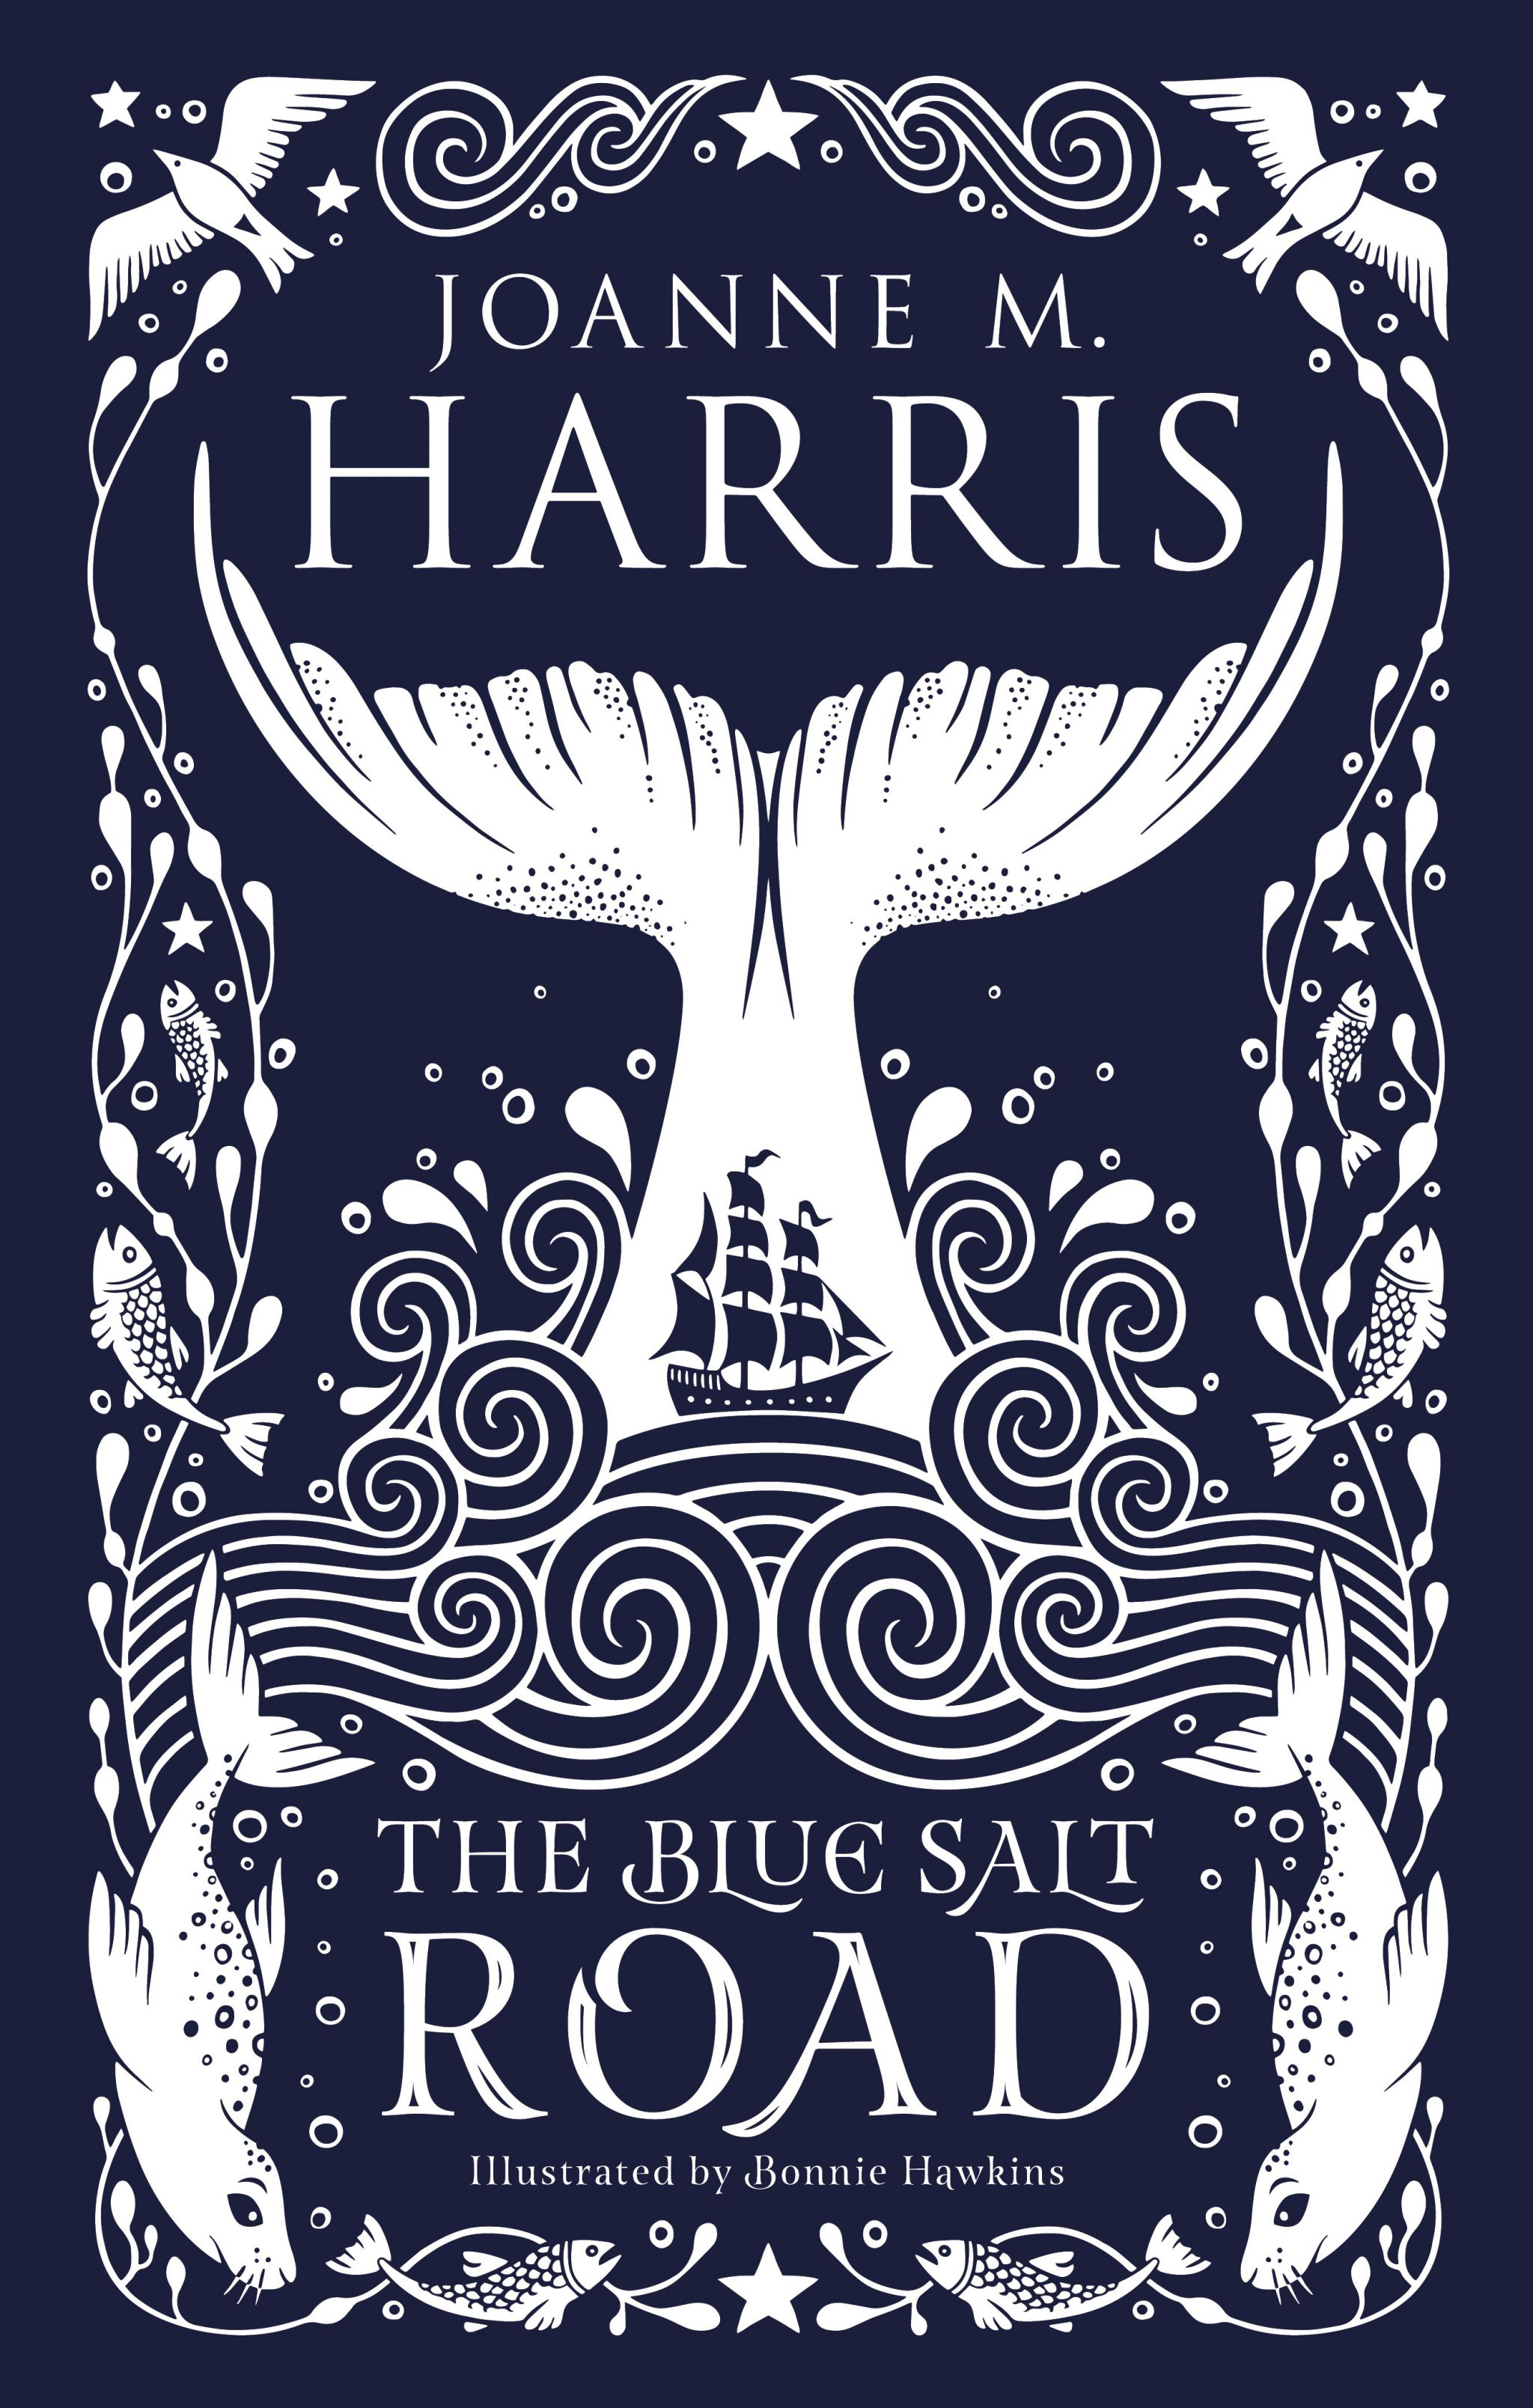 Book Review: The Blue Salt Road by Joanne M. Harris